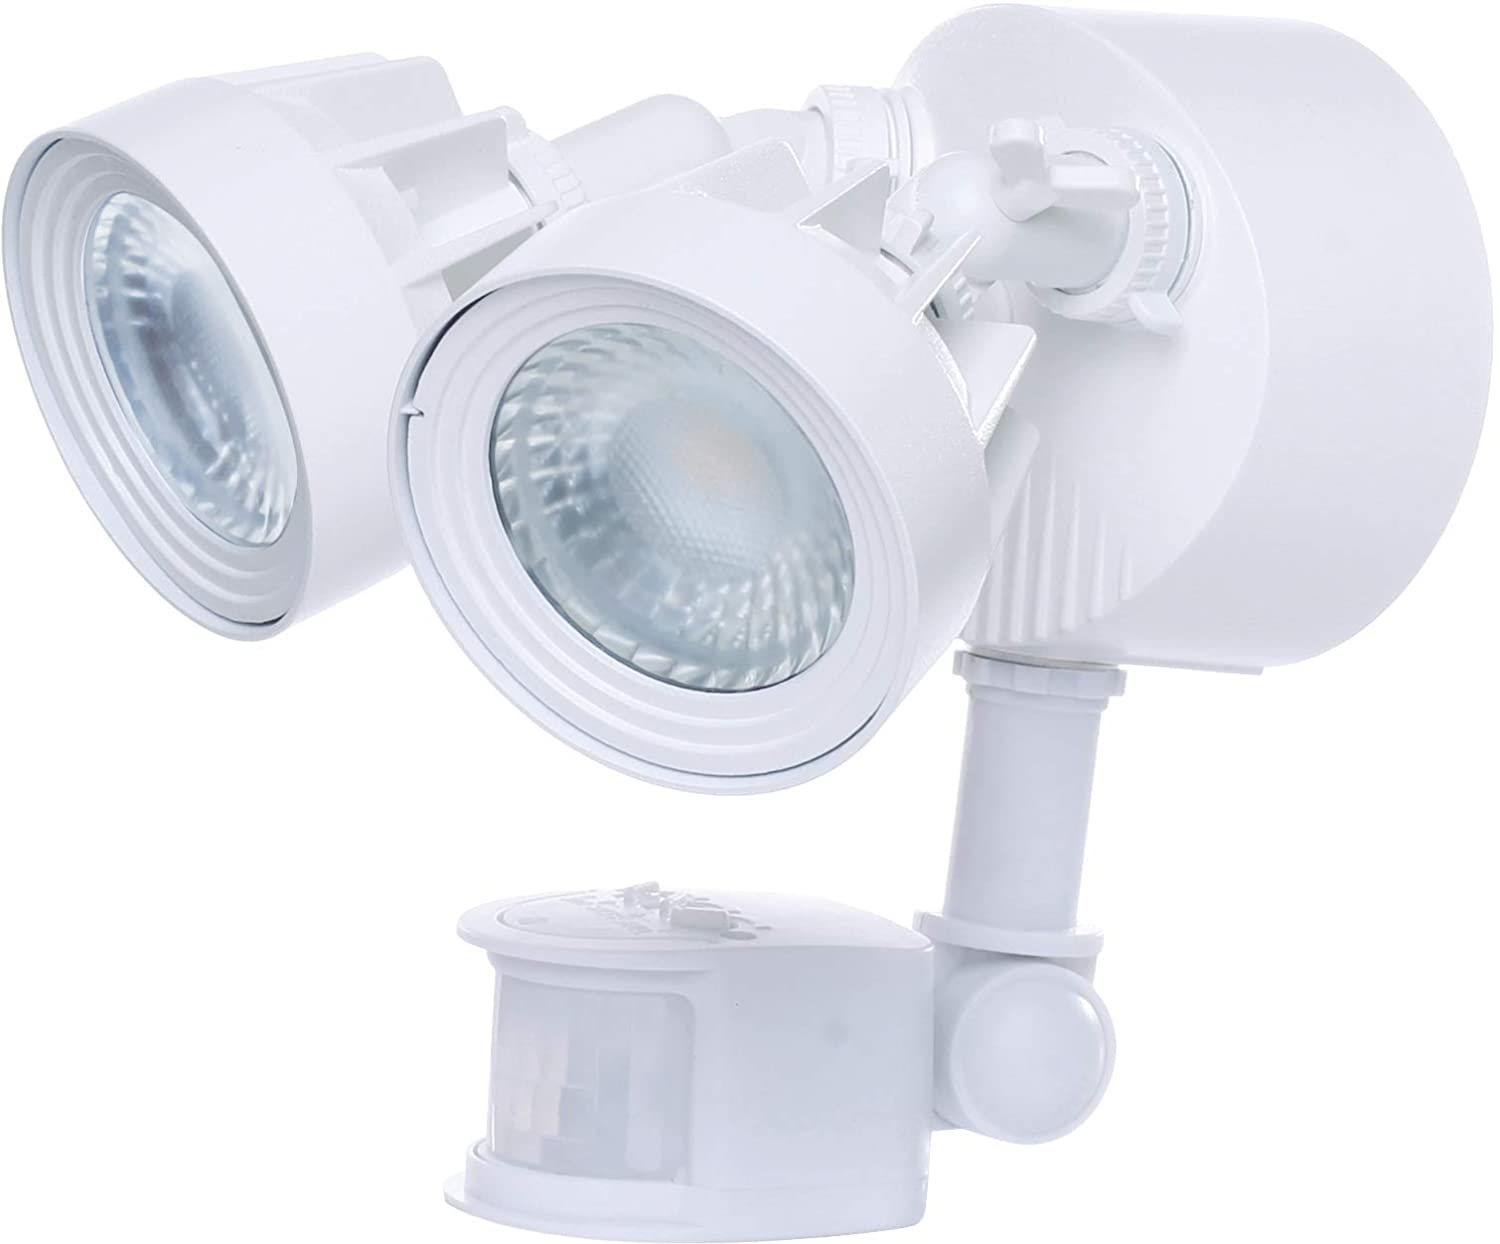 Nuvo 65 108 LED Security Light, 4000K 2,000 Lm Motion Sensor, White